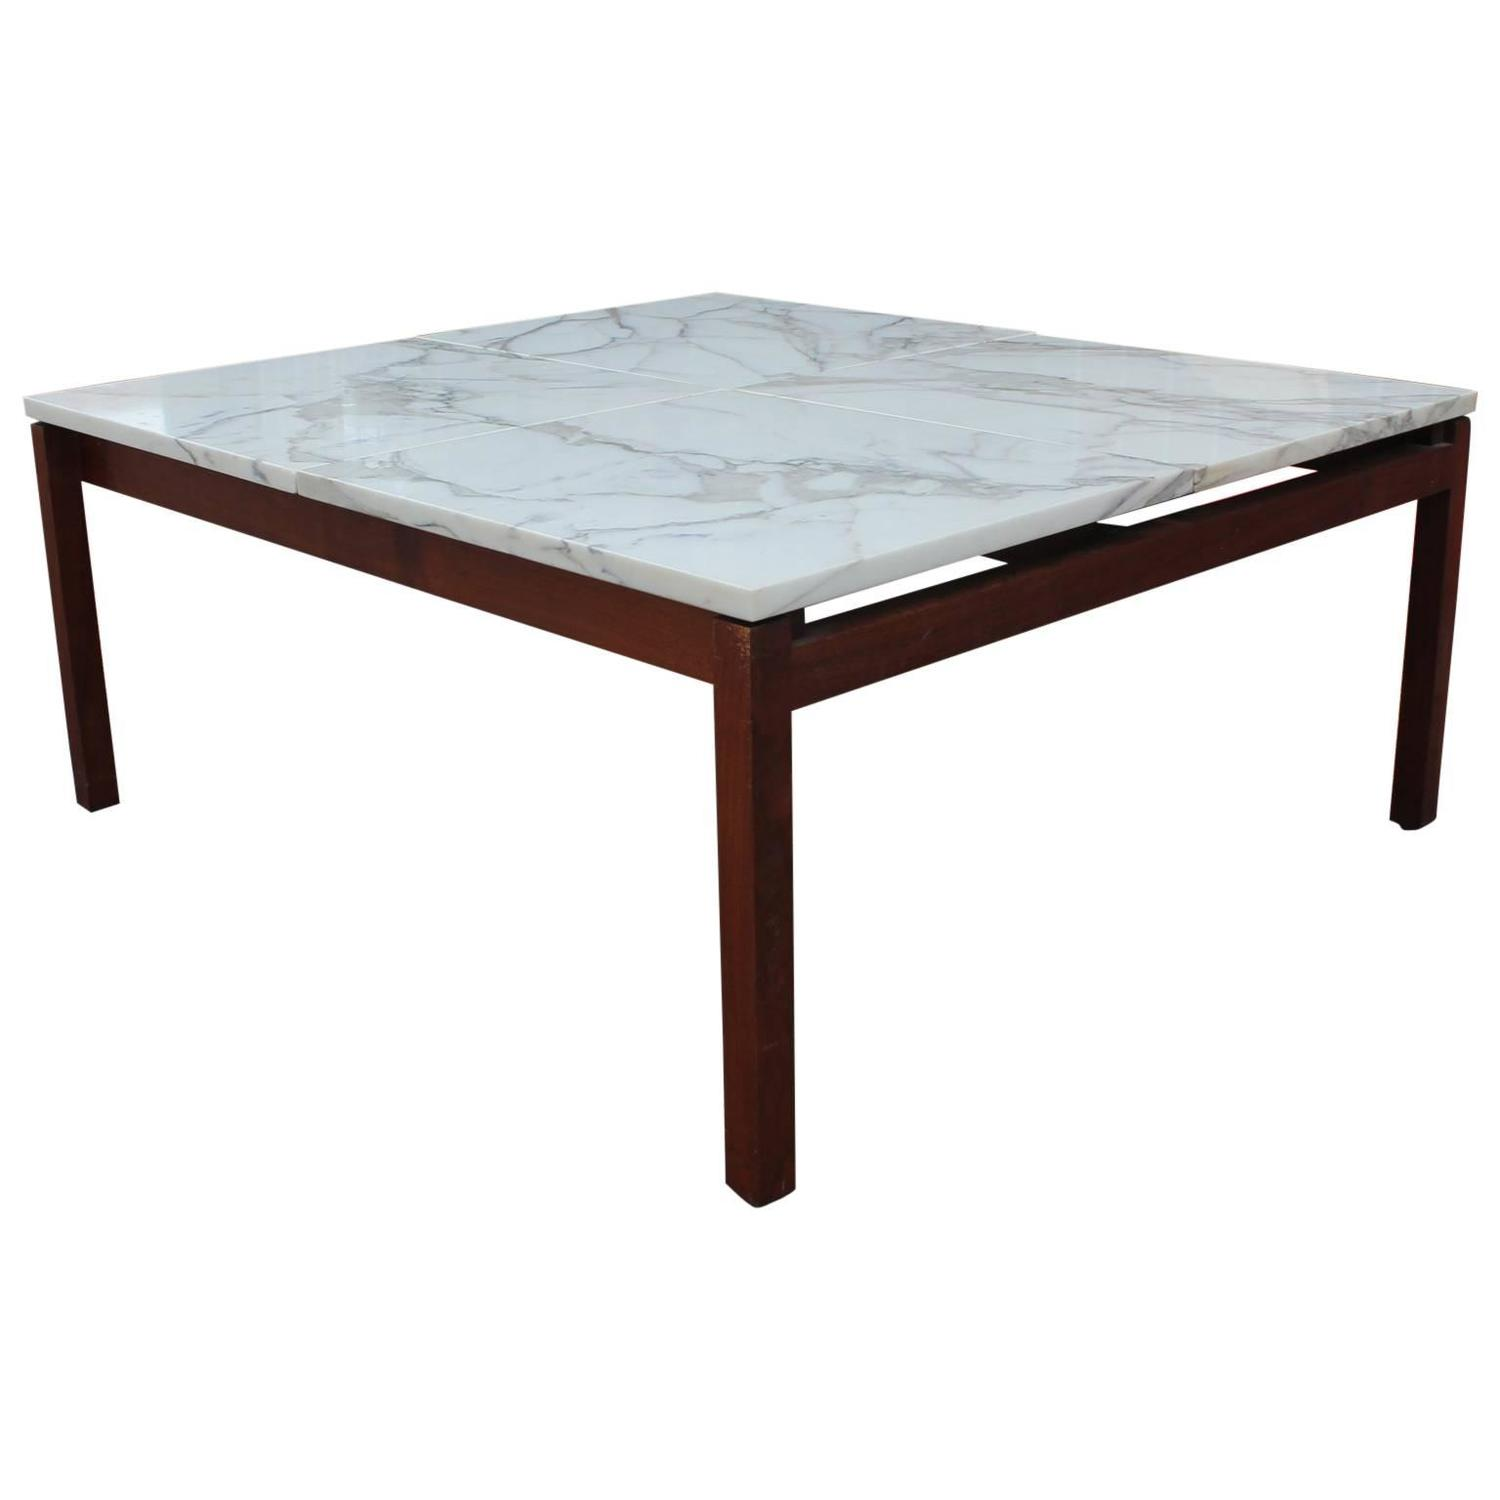 products kopp functional scandinavian modern wh coffee table designs cof